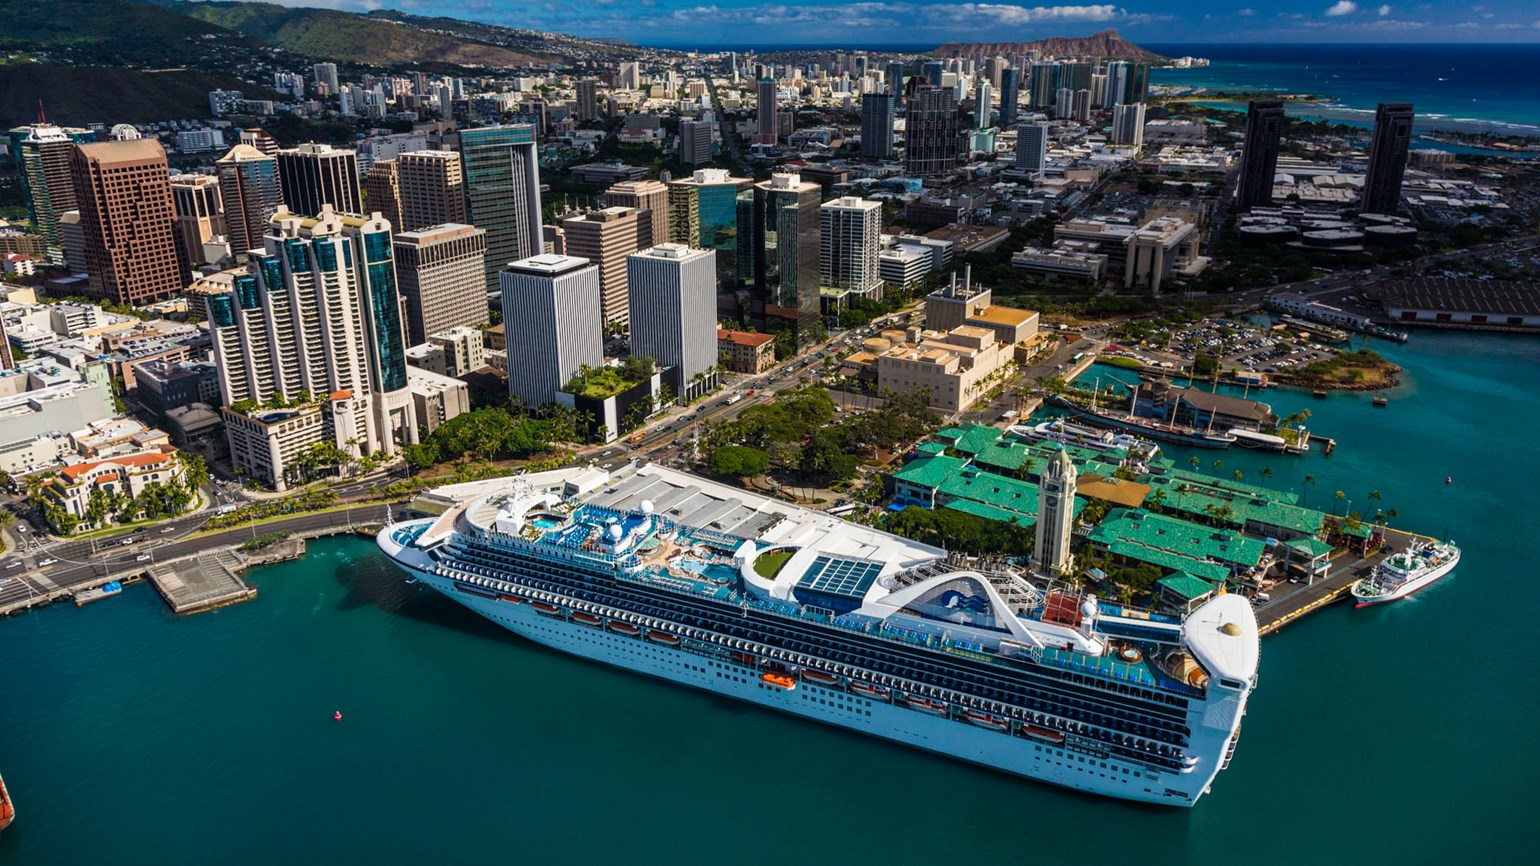 Survey Hawaii The Top Destination For Long Cruises Travel Weekly - Cruise ship destinations